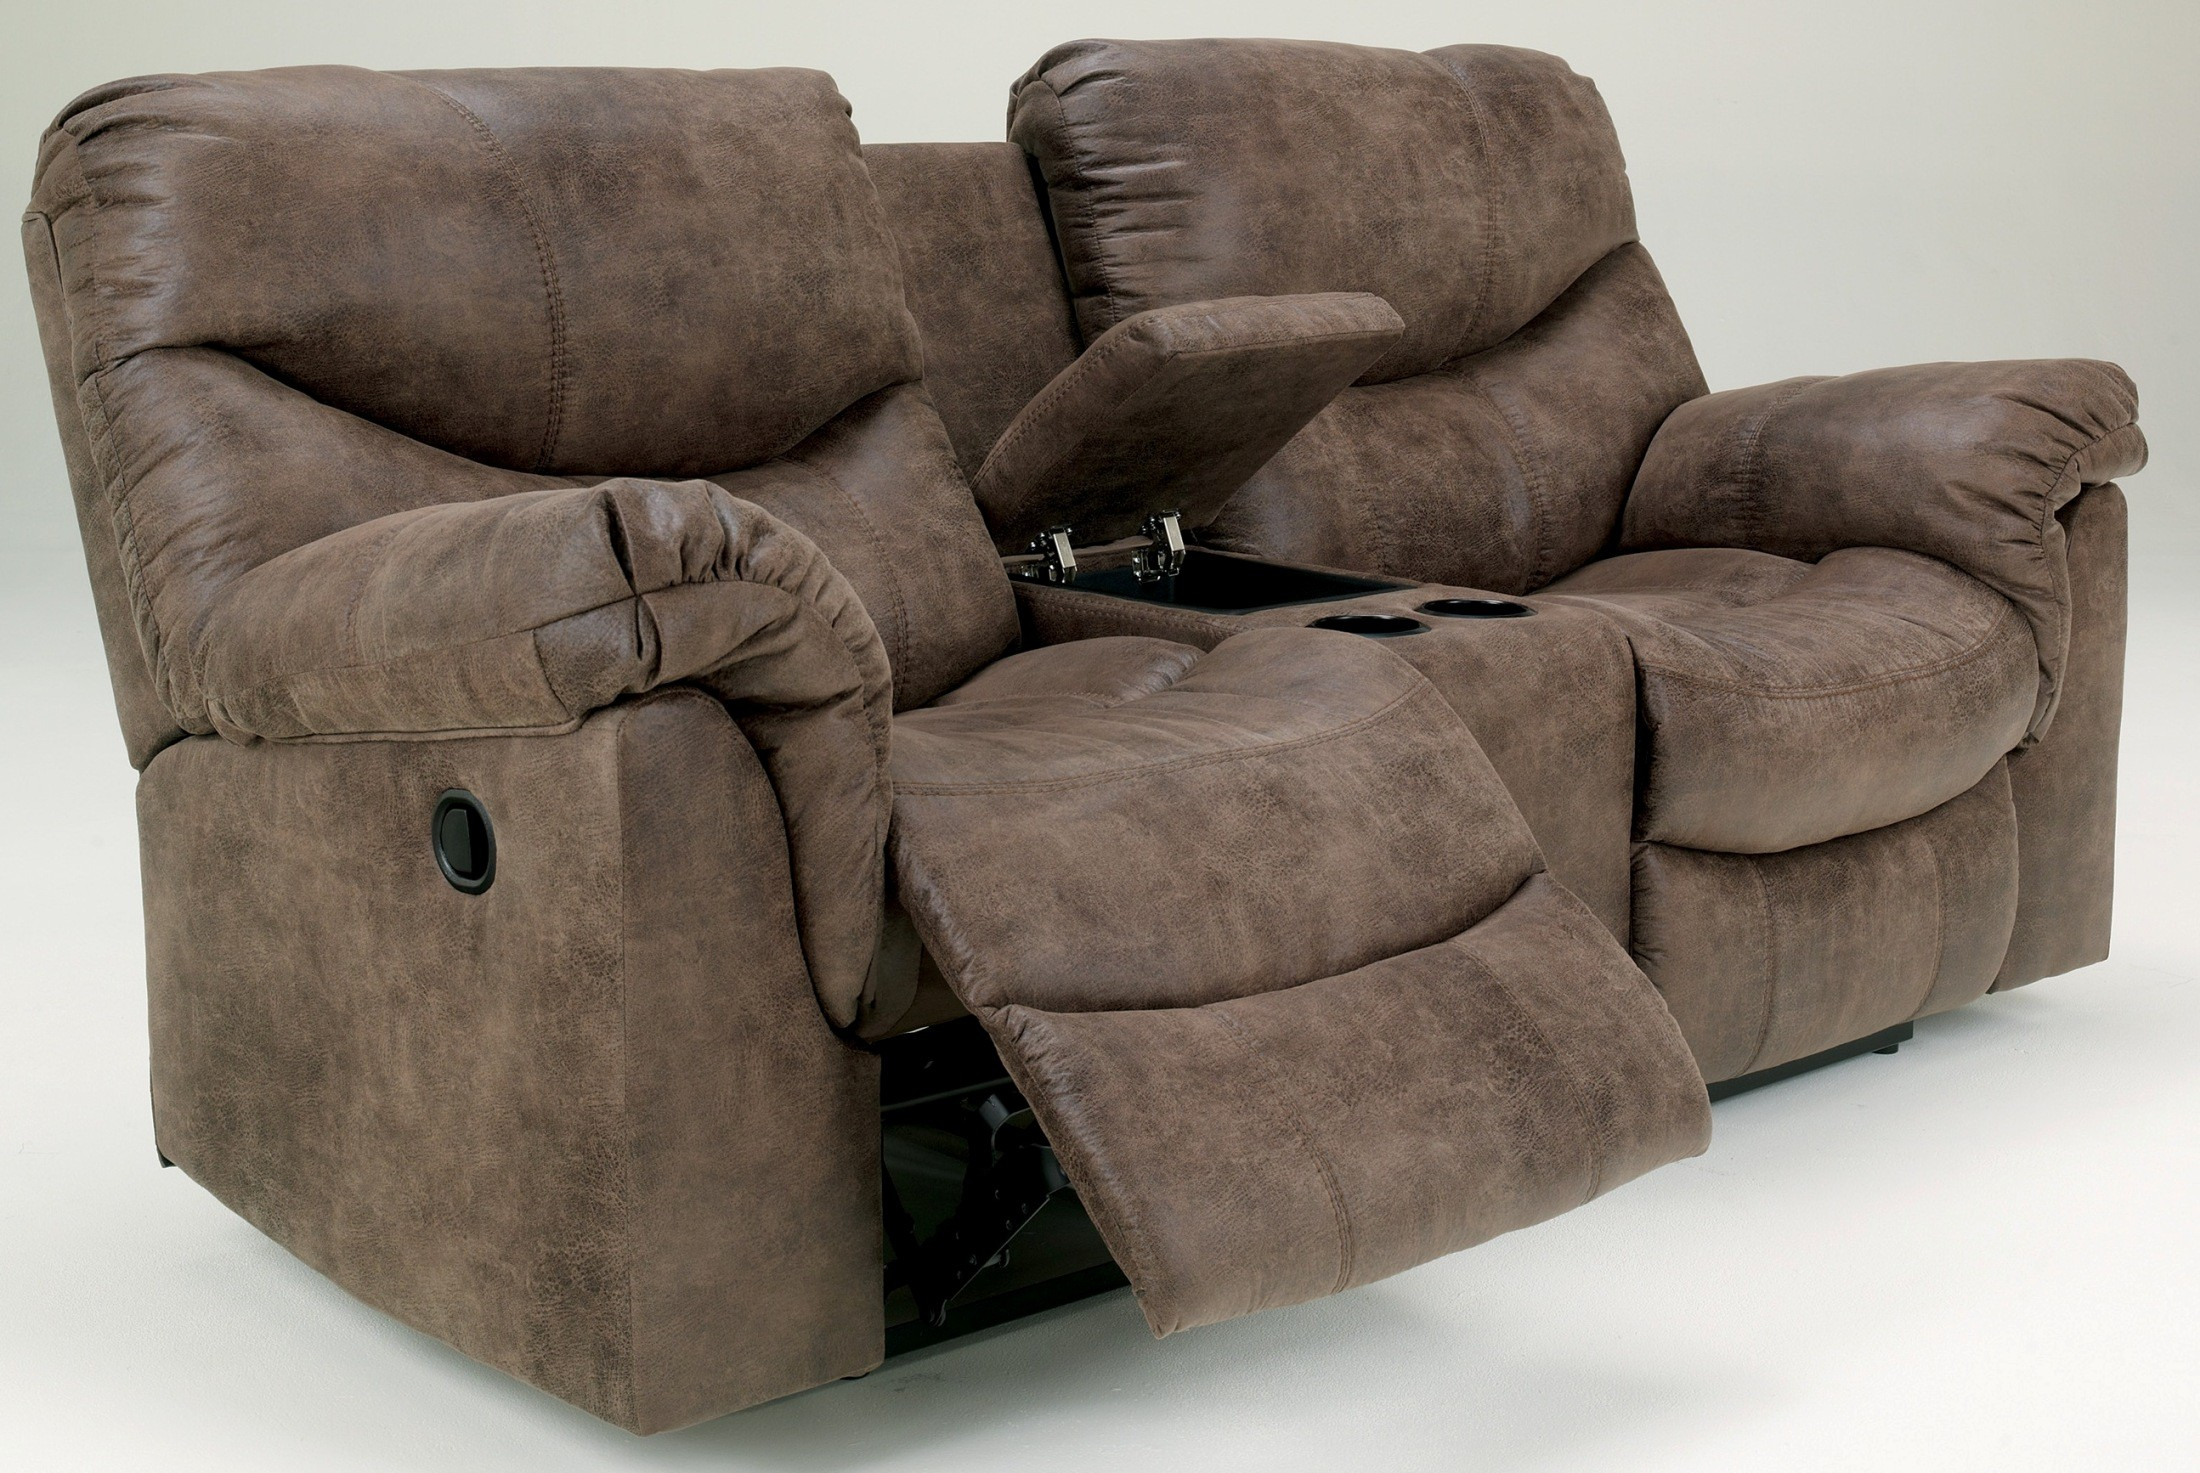 double recliner chairs hanging chair toronto alzena power reclining loveseat with console from